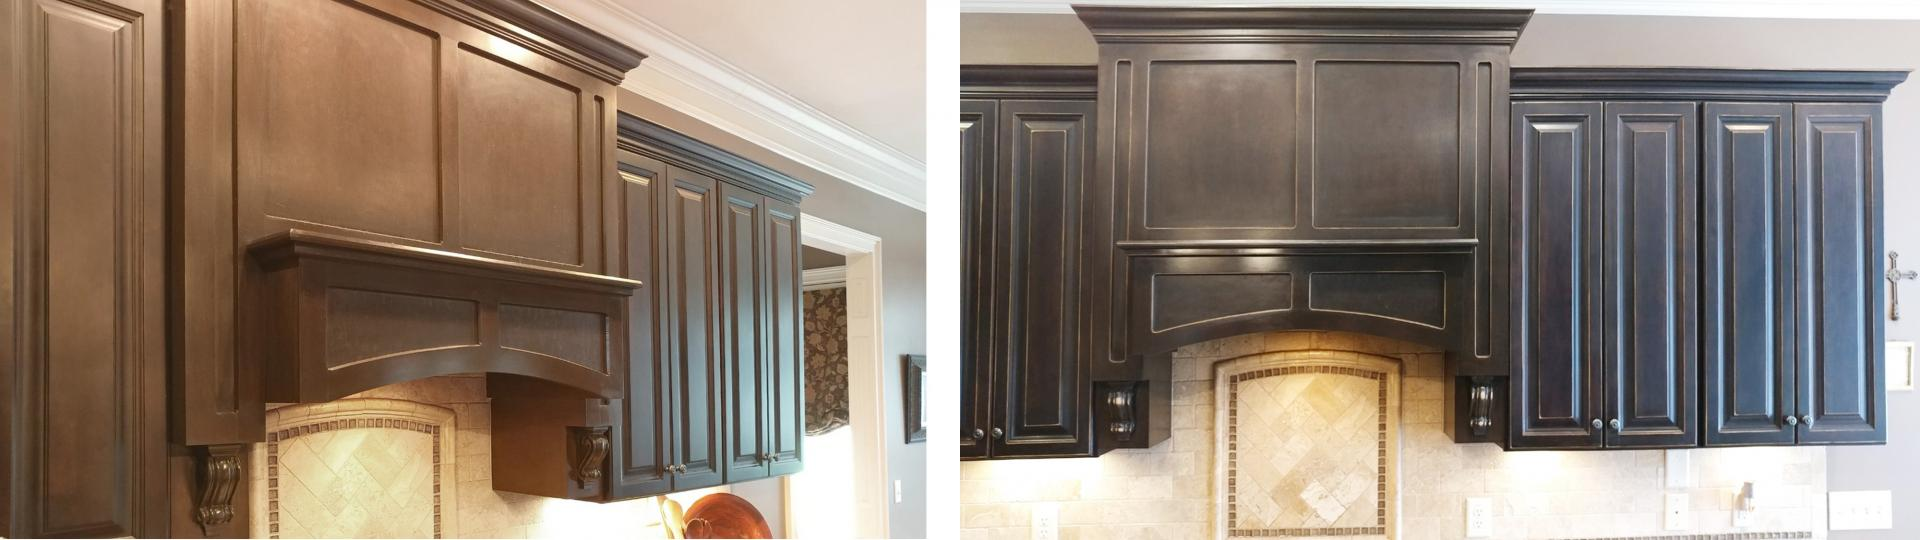 before and after rustic kitchen cabinet make-over.